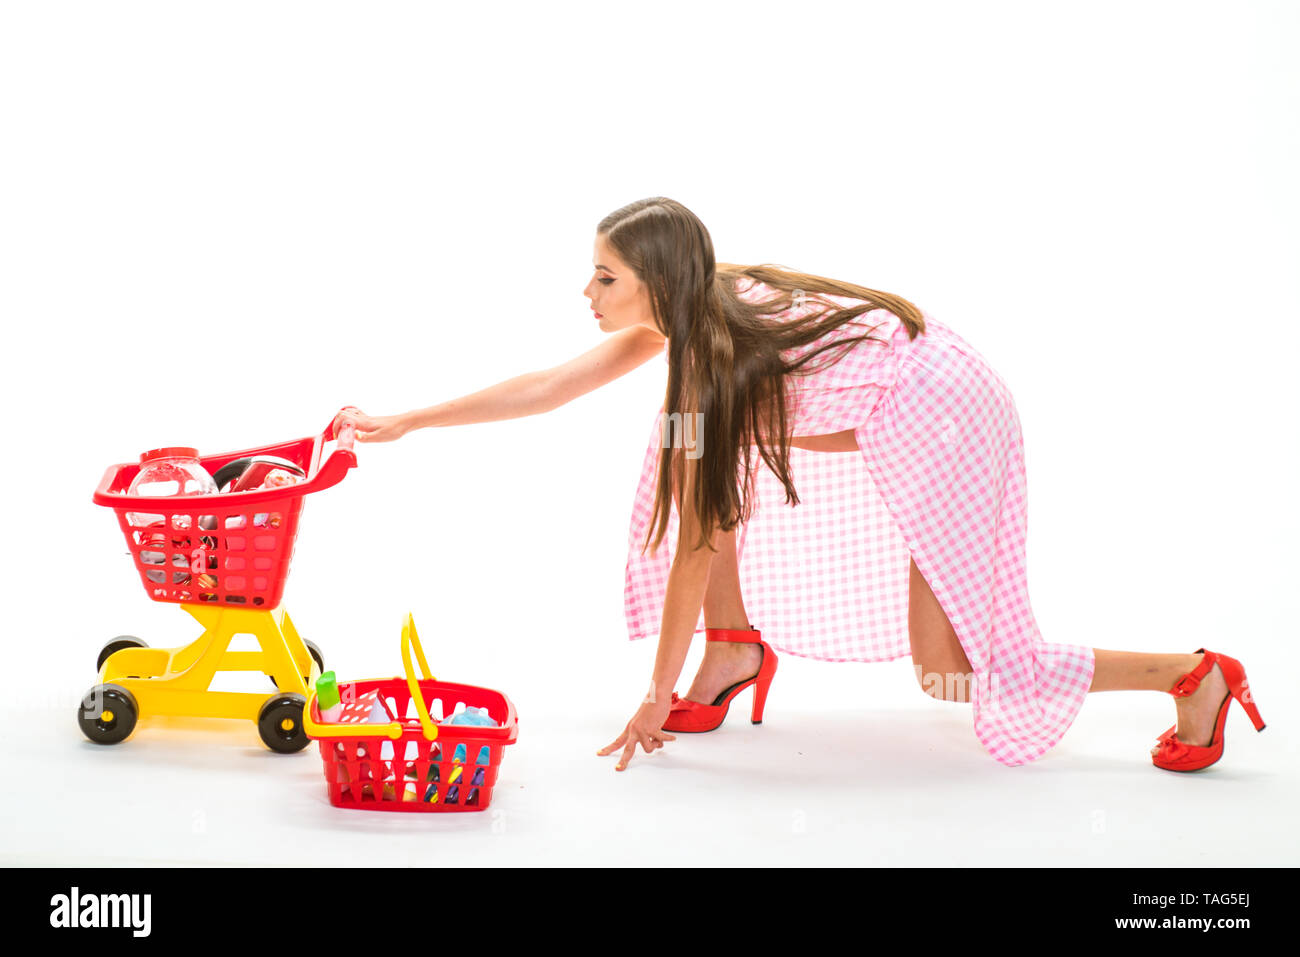 woman going to make payment in supermarket. shopping girl with full cart. retro woman go shopping. savings on purchases vintage housewife woman isolat Stock Photo